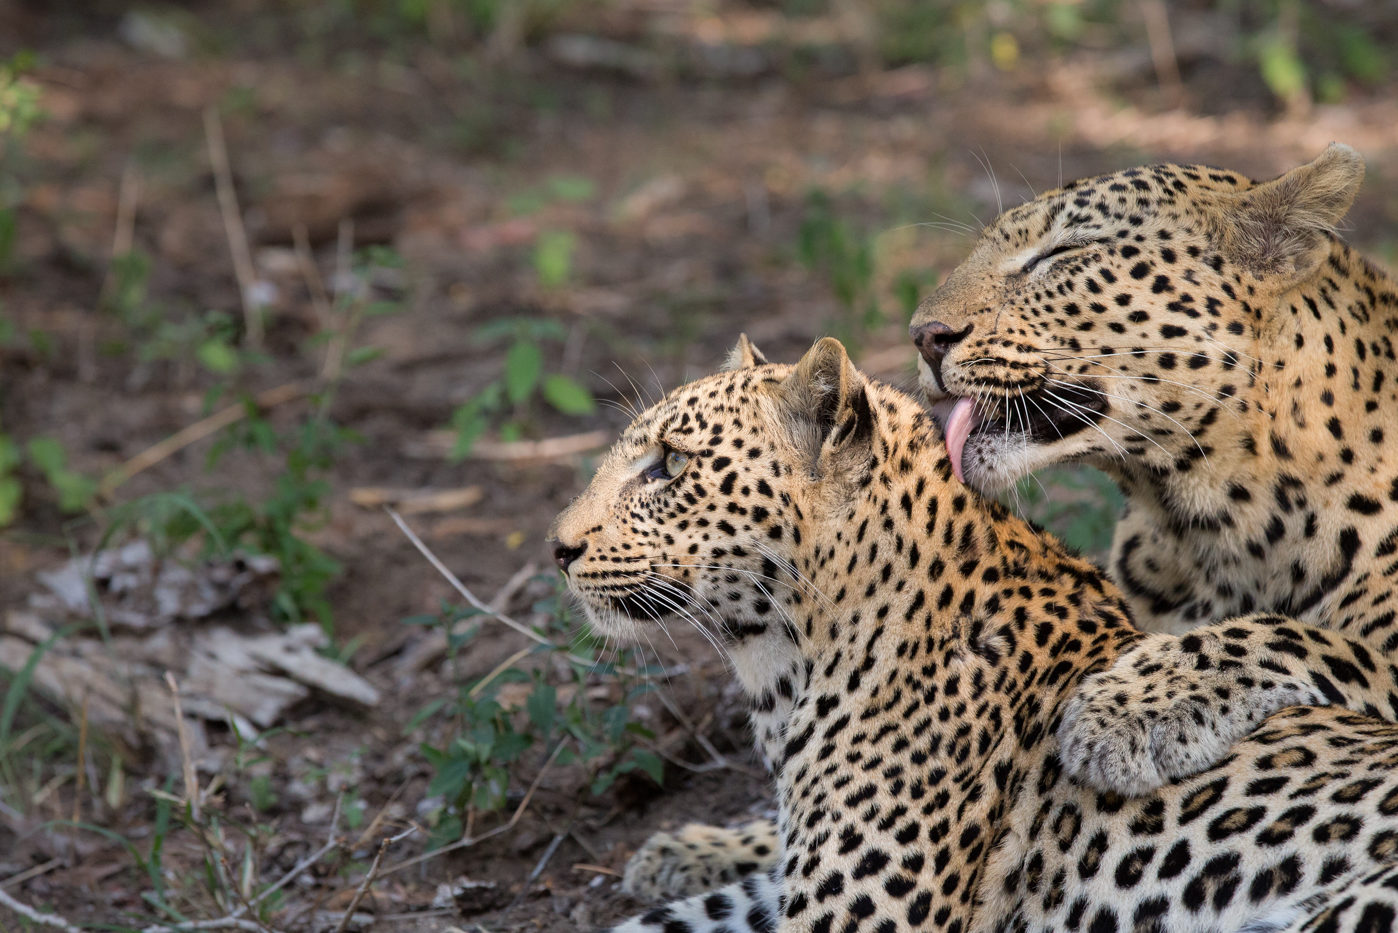 A leopard mother licks and grooms her cub affectionately.